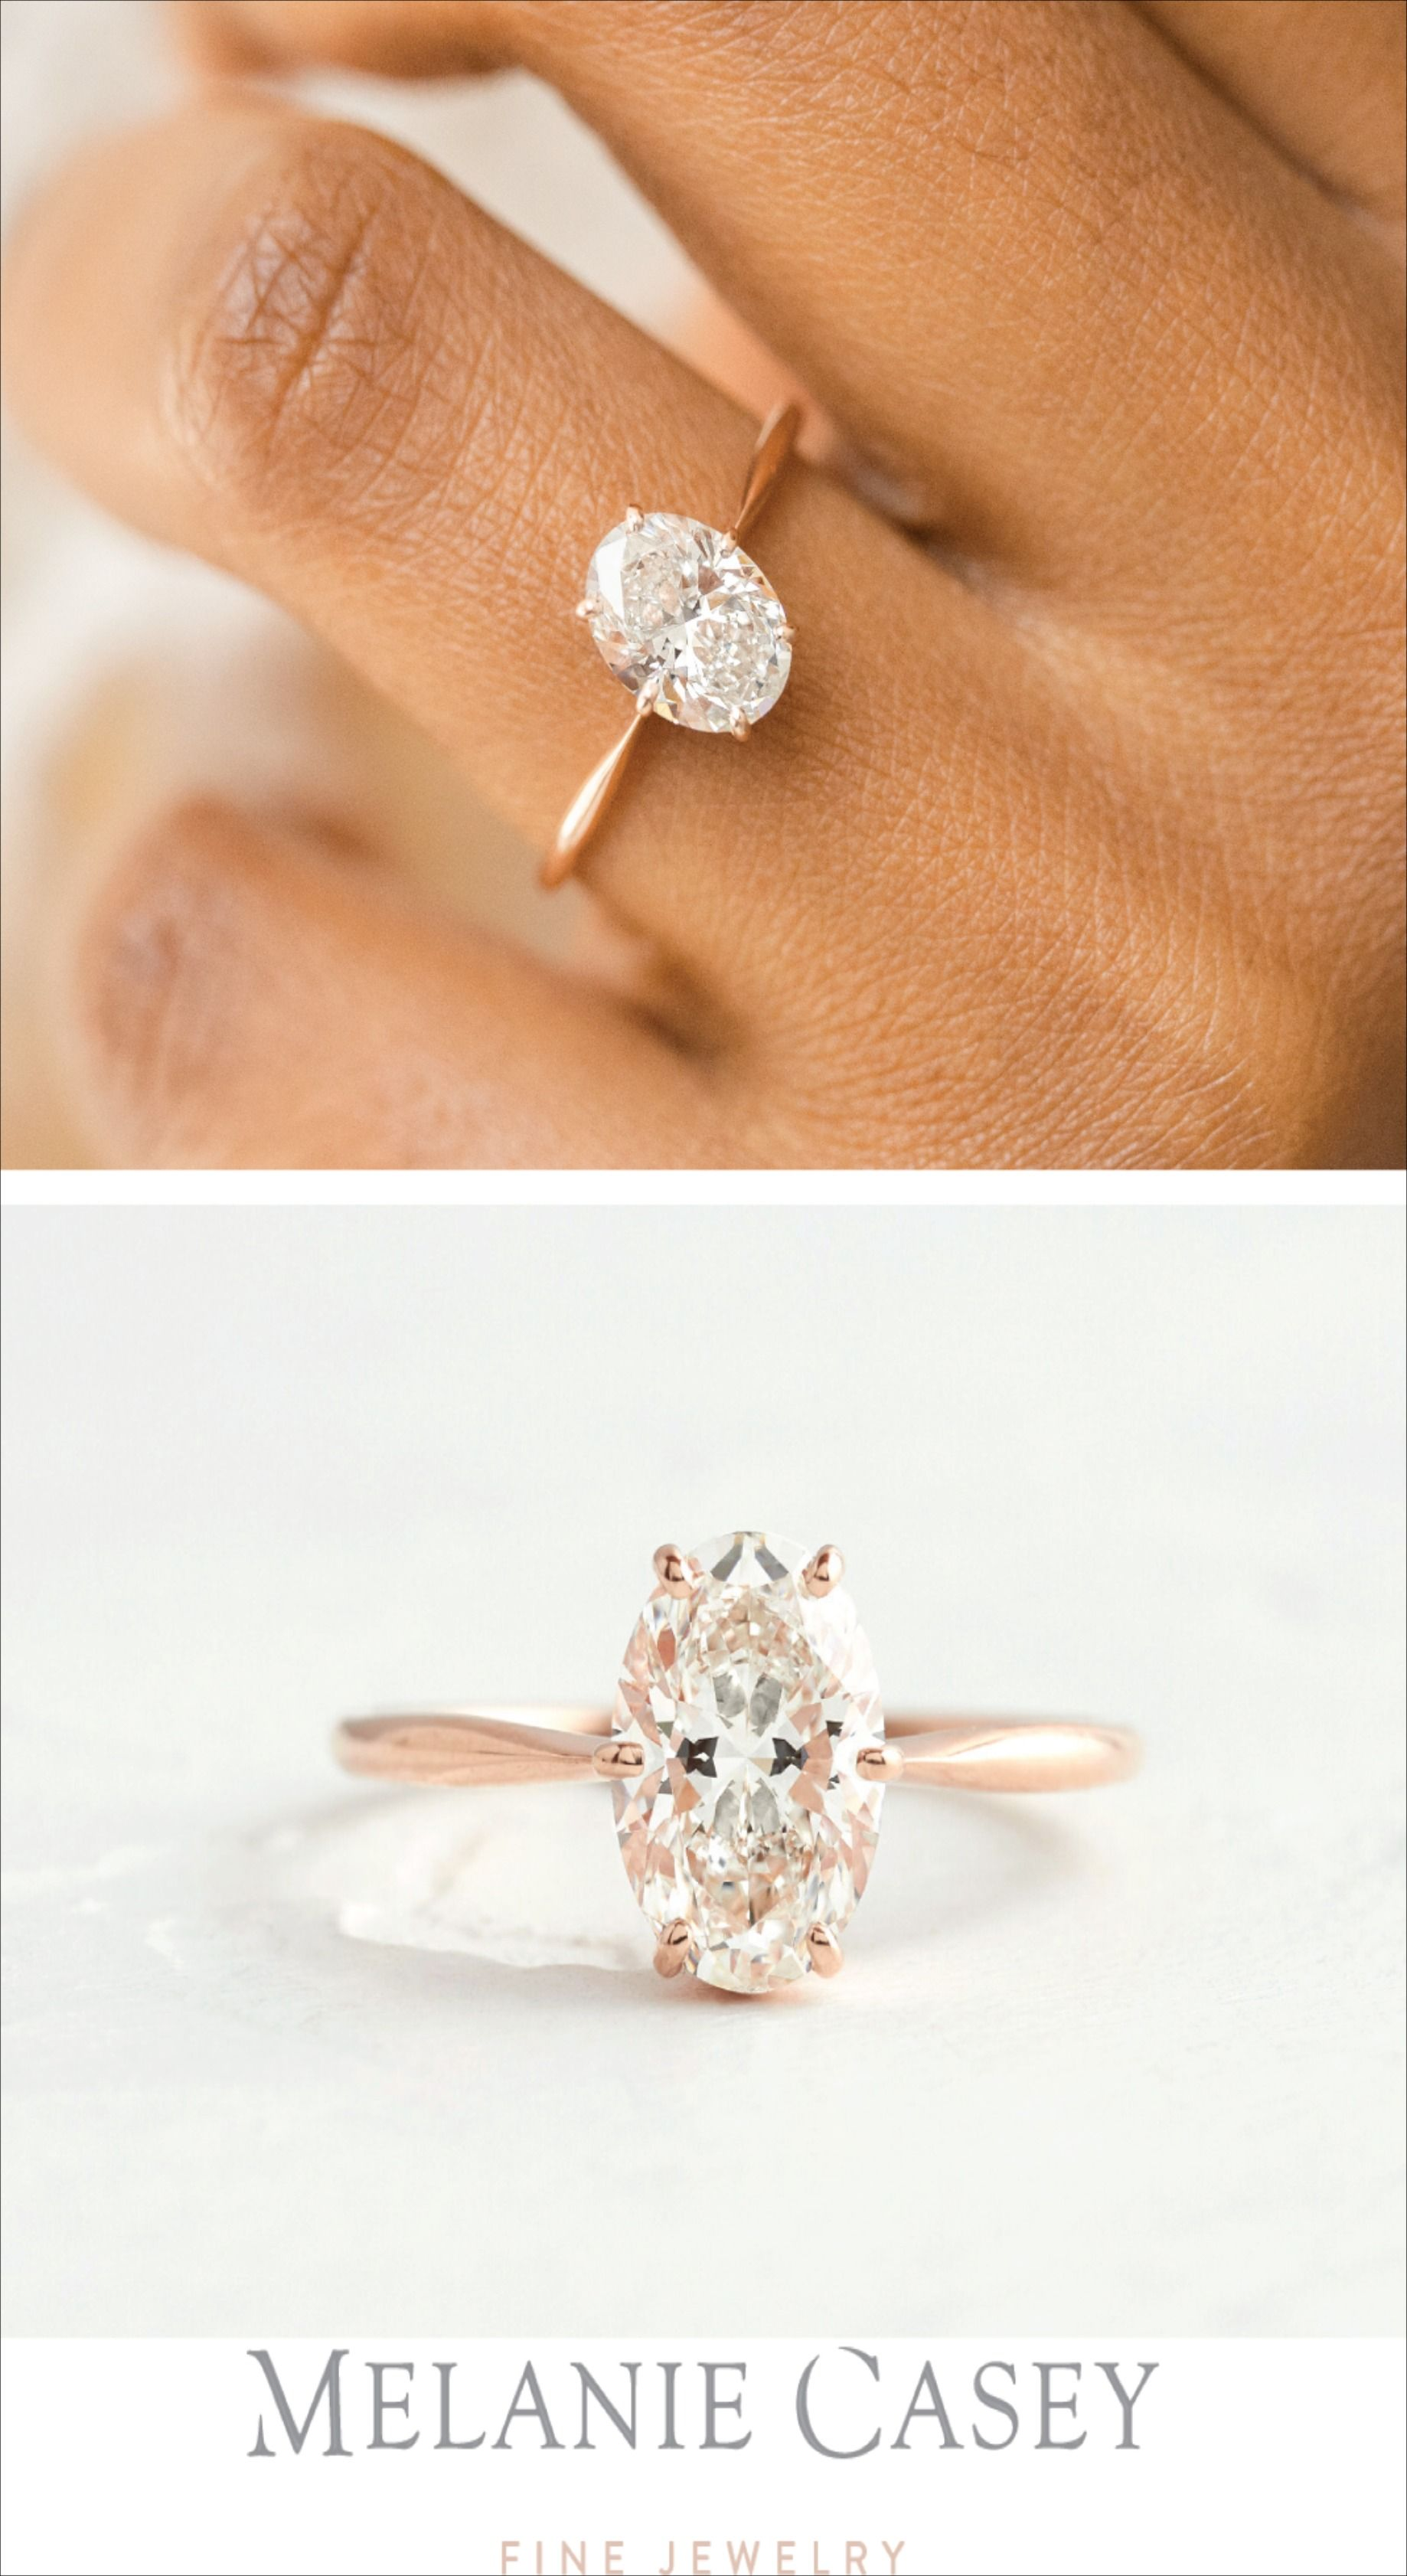 Wishing Well Ring Oval Diamond White Gold Engagement Rings Vintage Gold Oval Engagement Ring Rose Gold Oval Engagement Ring